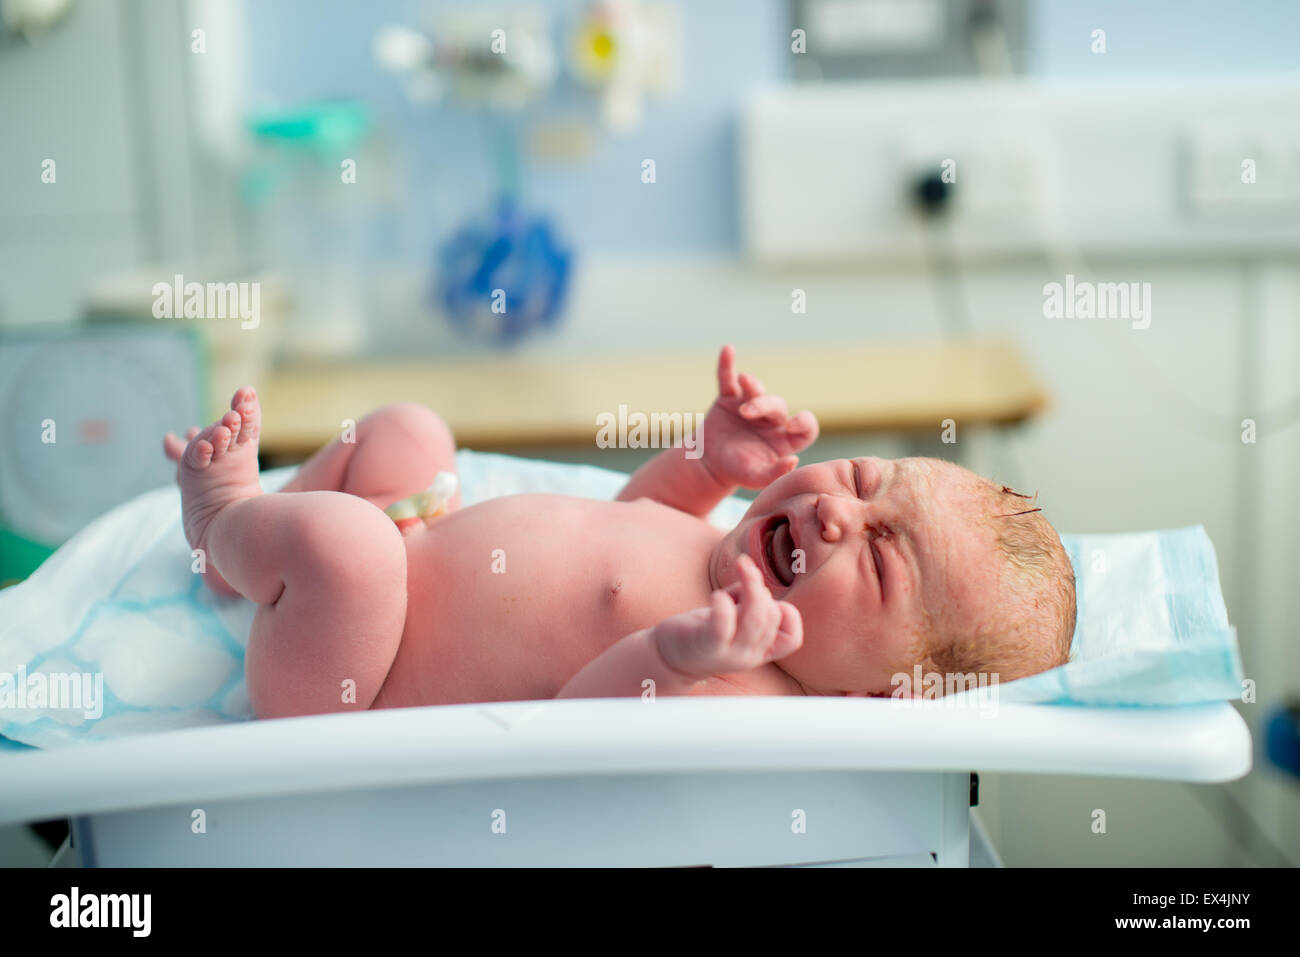 A newborn baby cries as it is weighed for the very first time - Stock Image